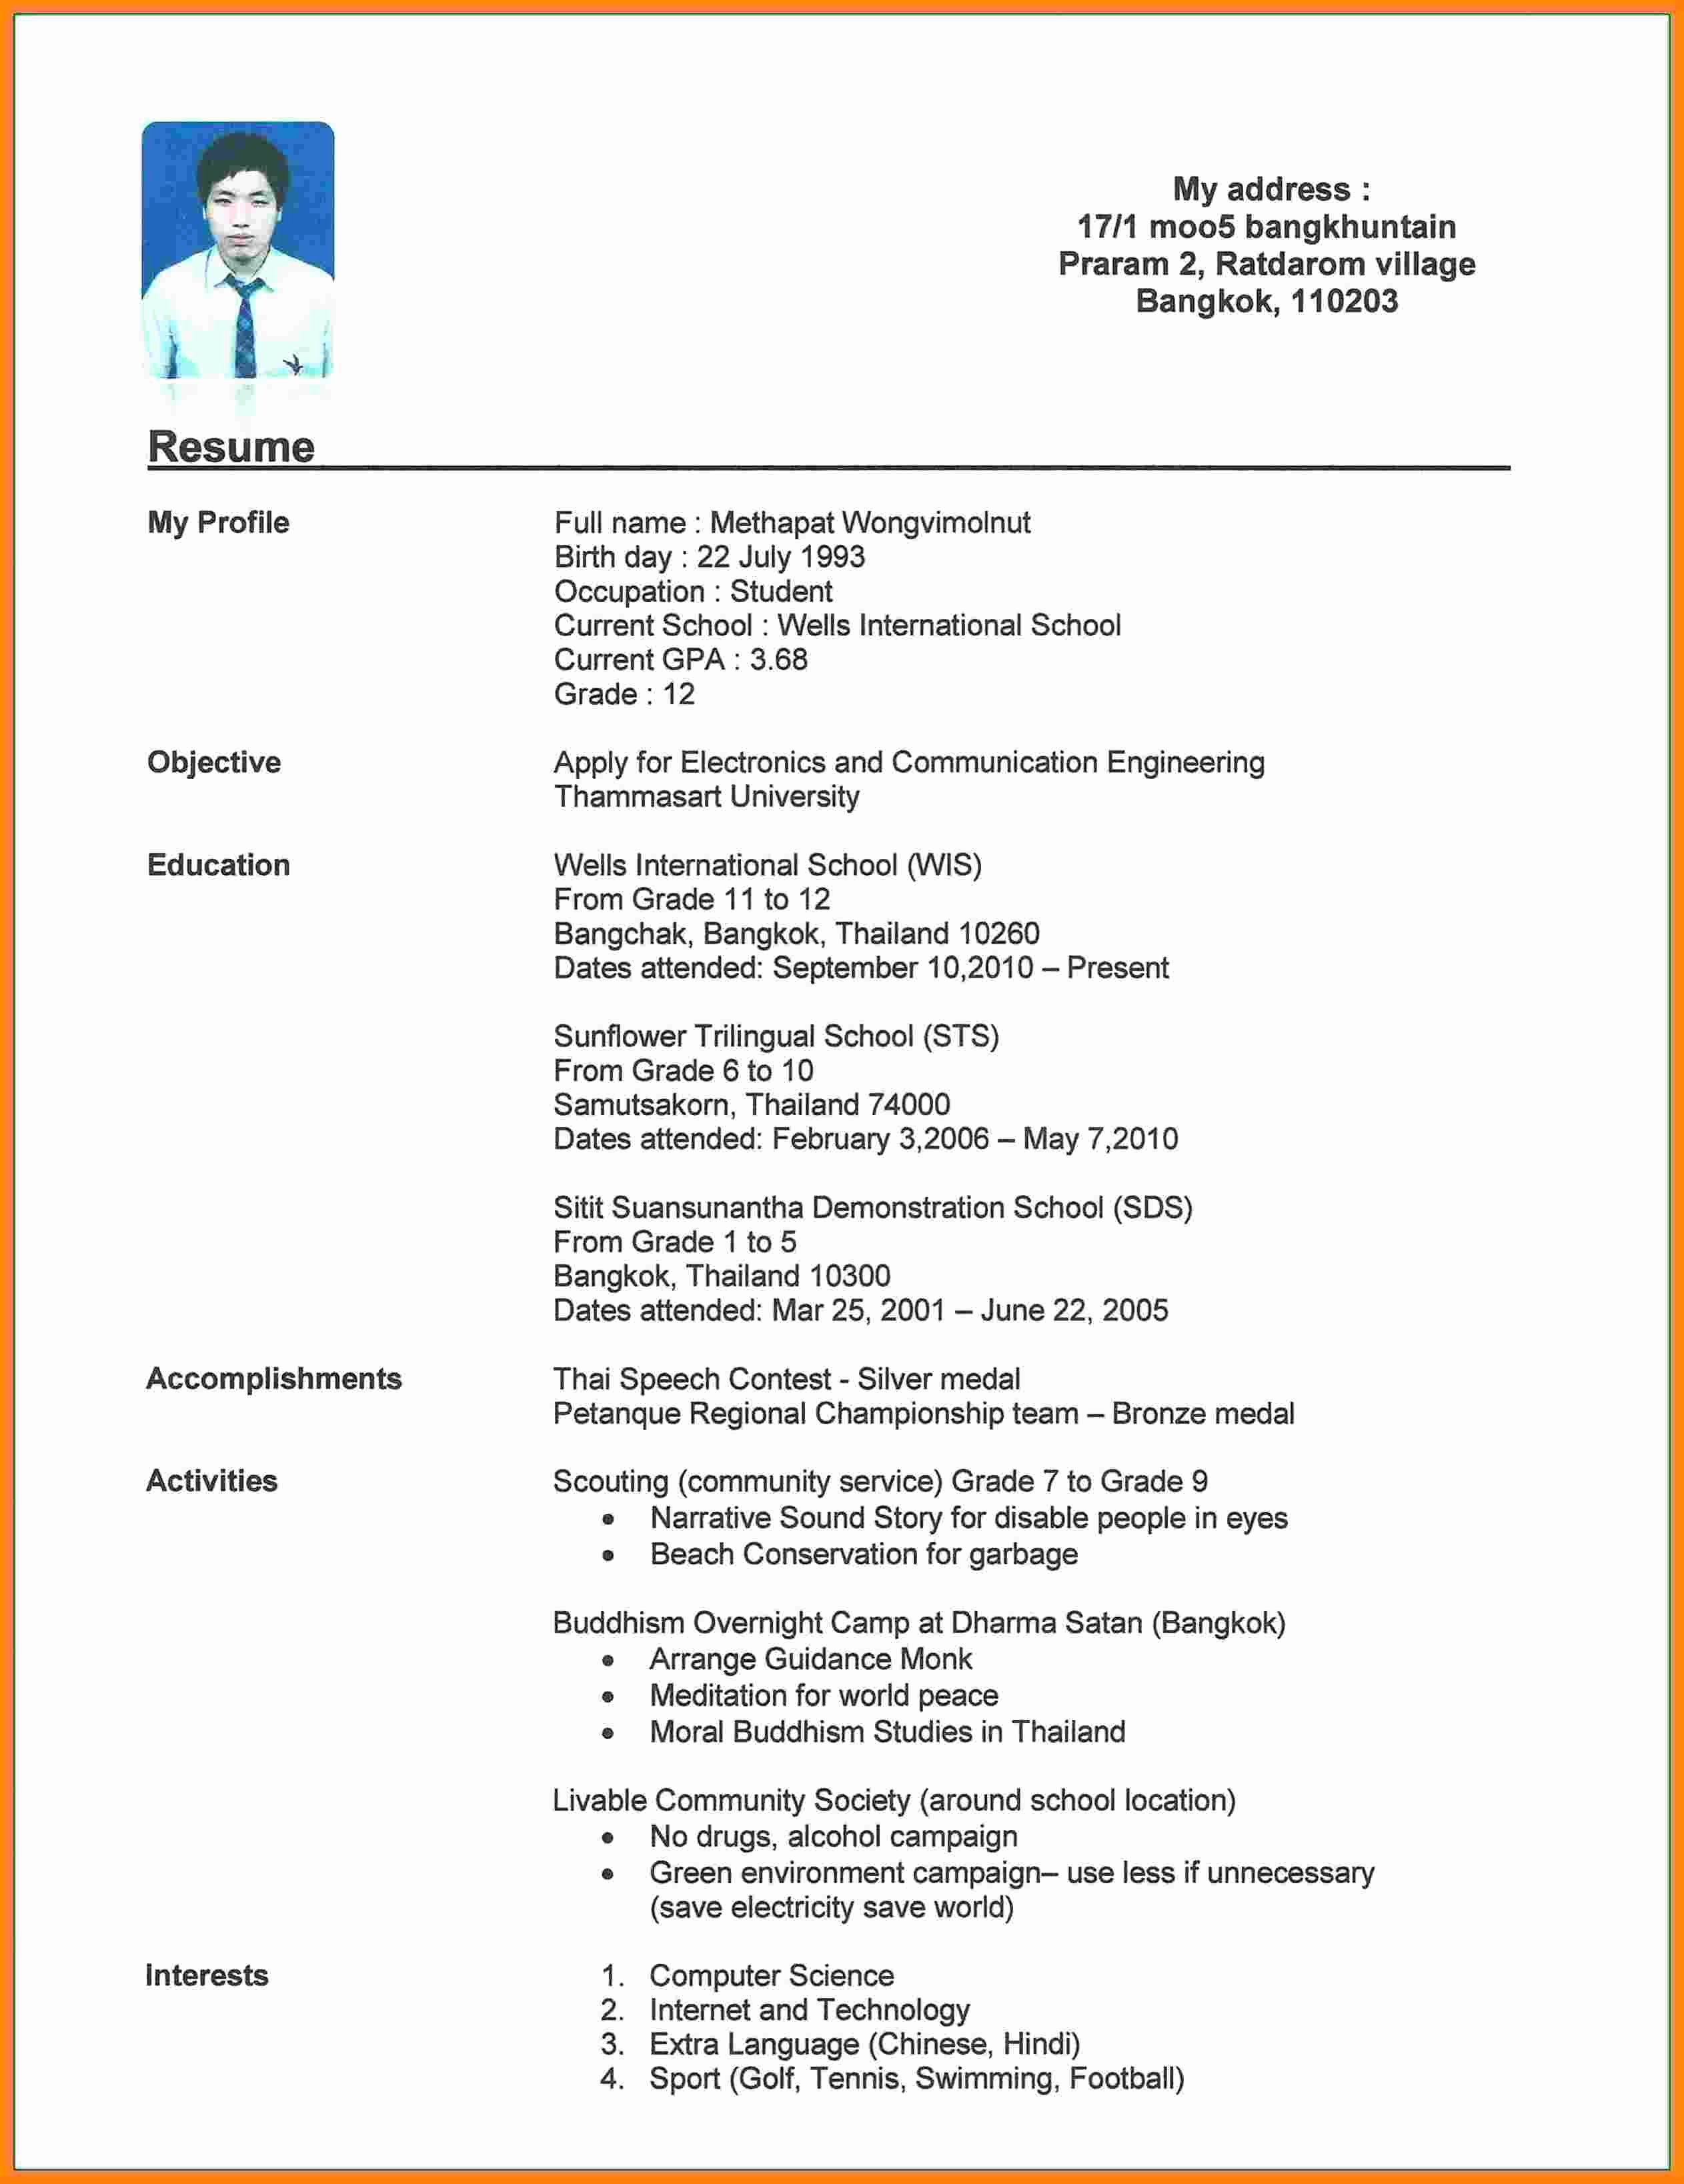 No Experience Resume Template Unique 7 Cv Samples for Students with No Experience